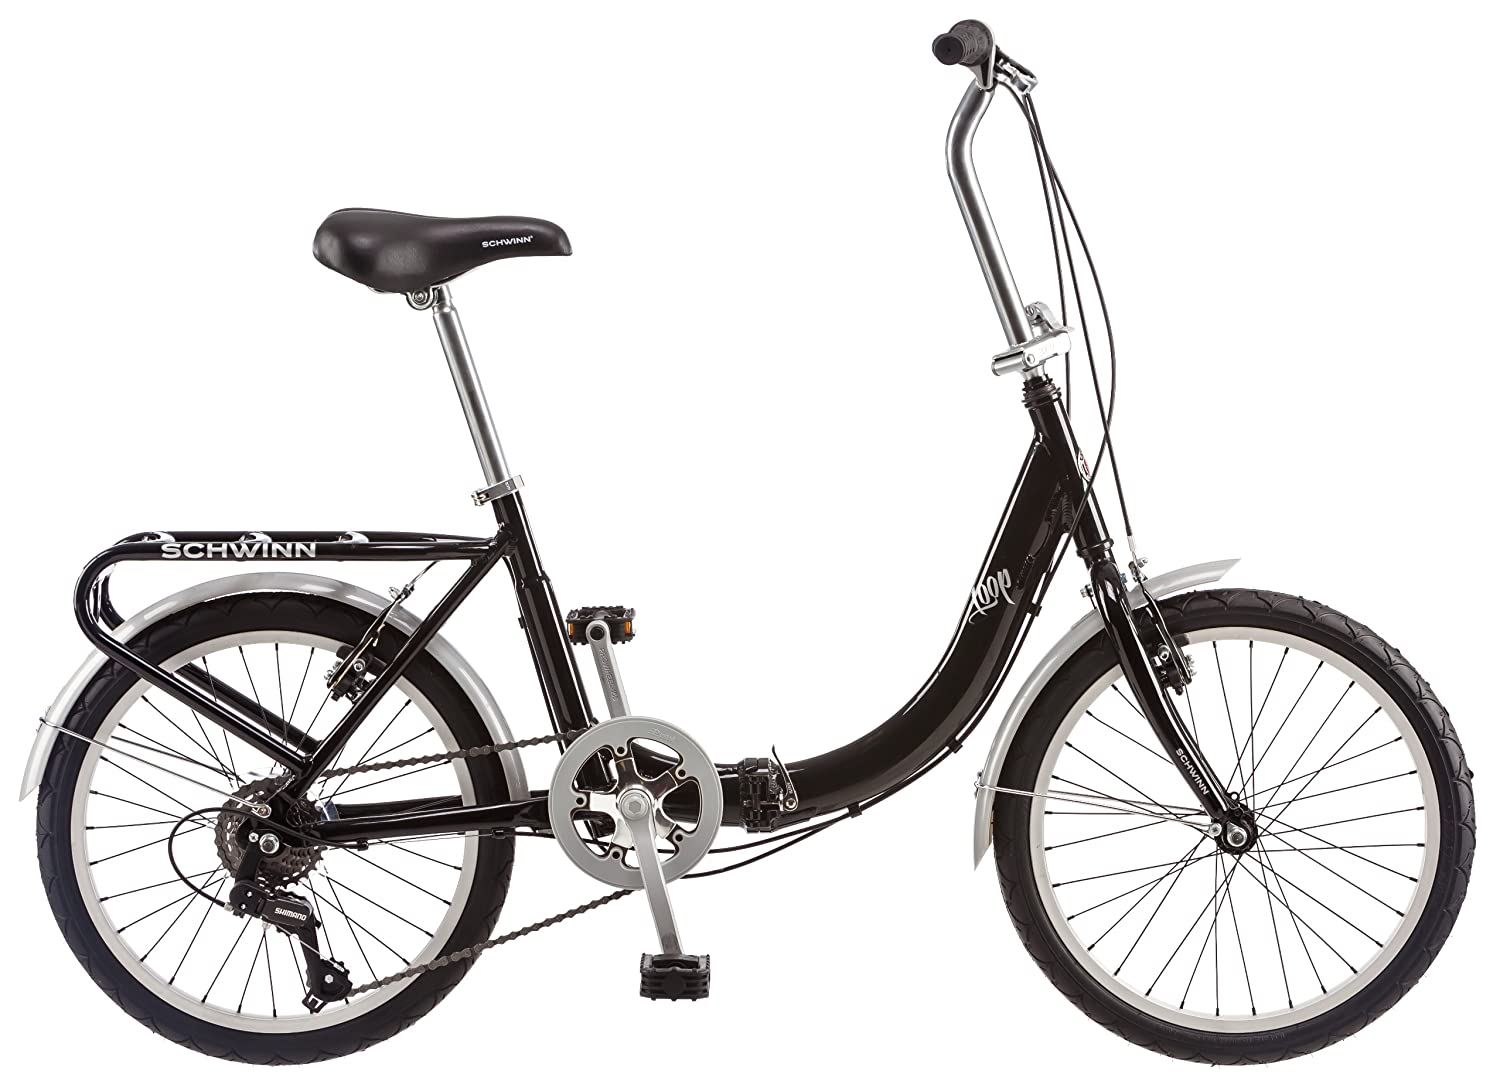 Schwinn Loop 7 Speed Folding Bike Review